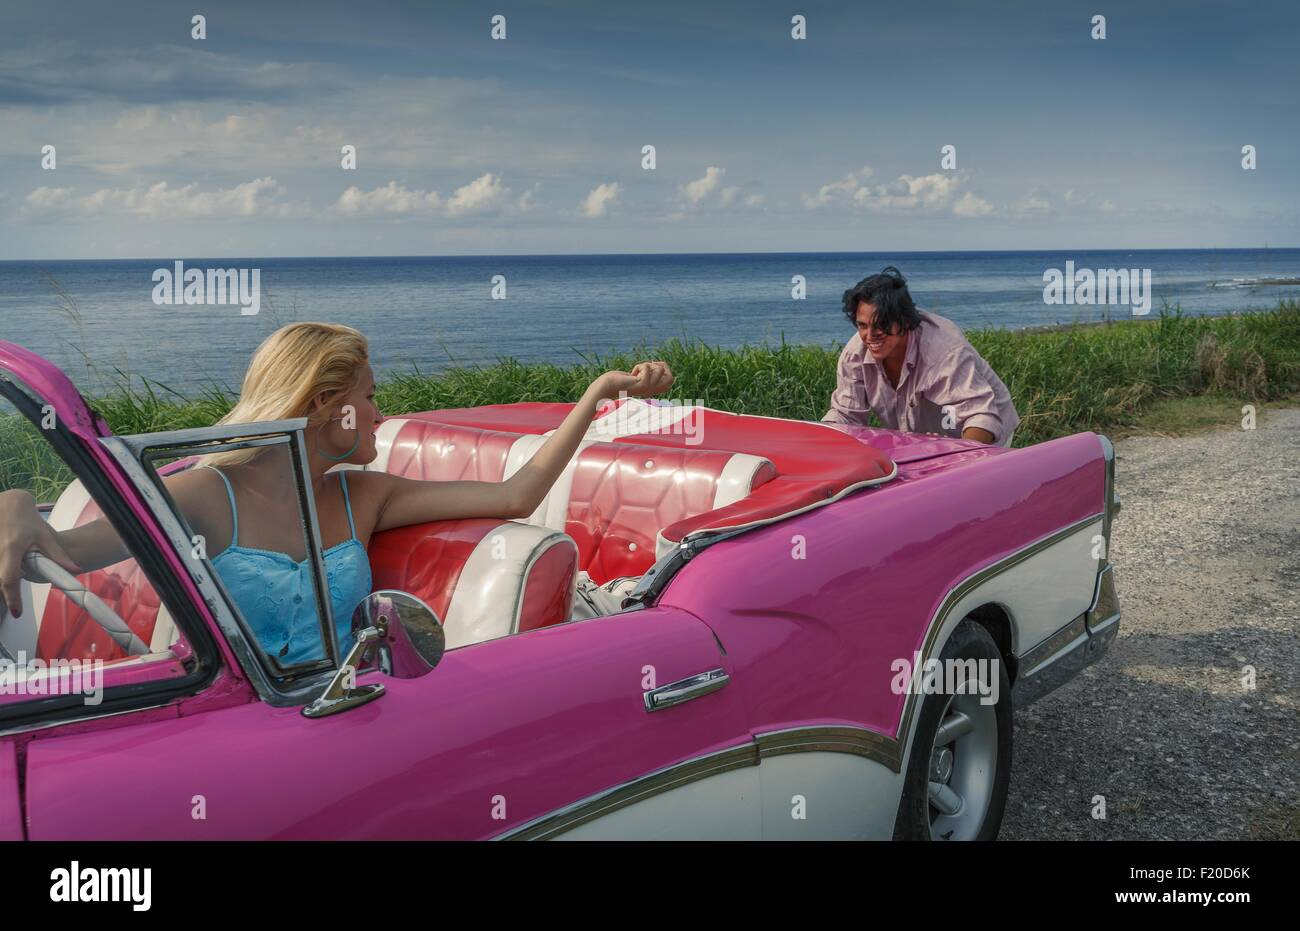 Young man pushing pink vintage convertible at coast whilst girlfriend drives, Havana, Cuba Stock Photo